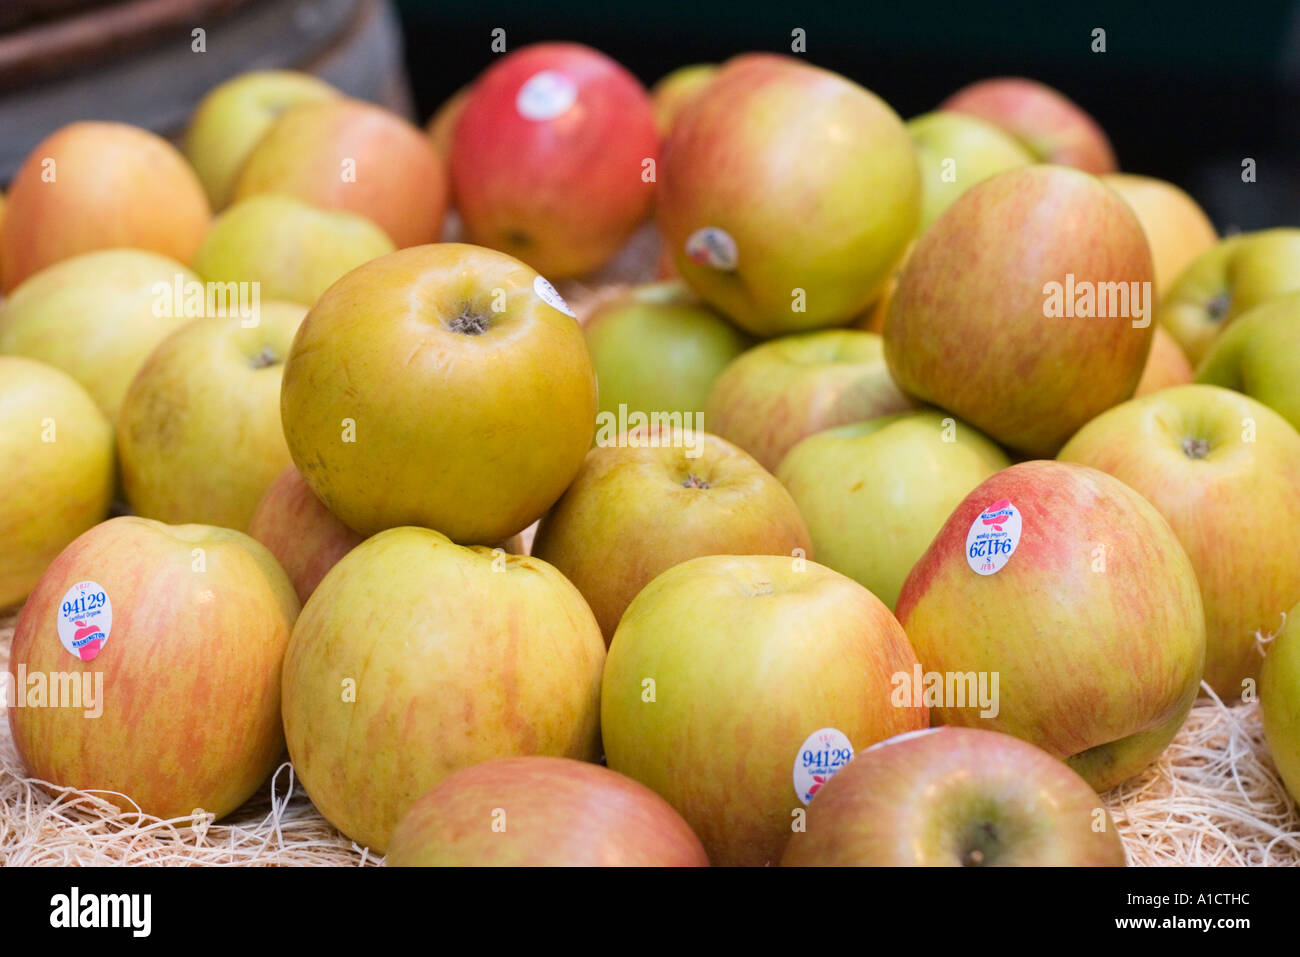 Fuji apples at the Ferry Building in San Francisco California United States of AmericaStock Photo